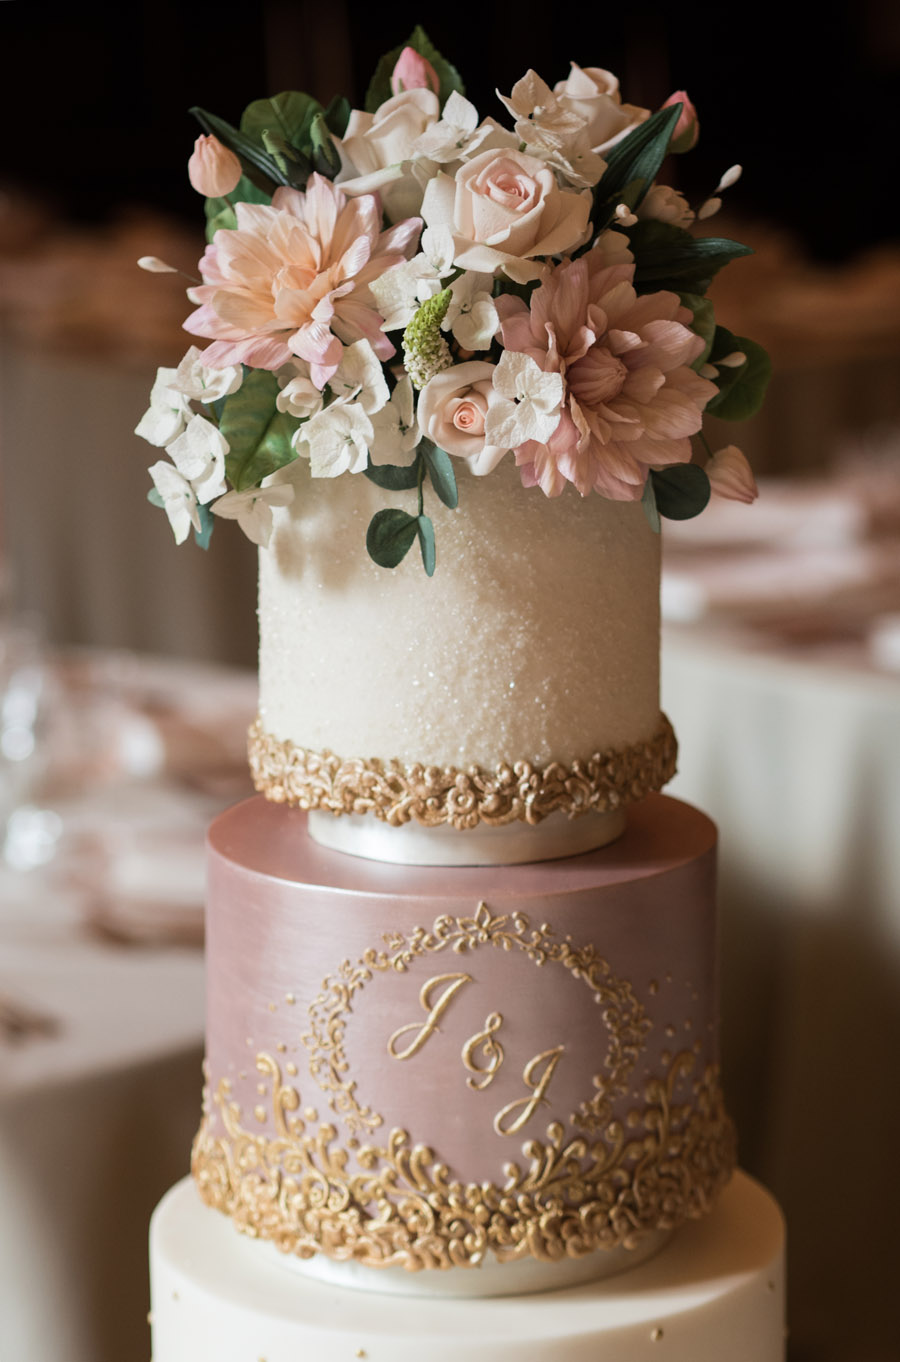 Beautiful wedding cakes by The Frostery - trends and ideas for 2019 (9)